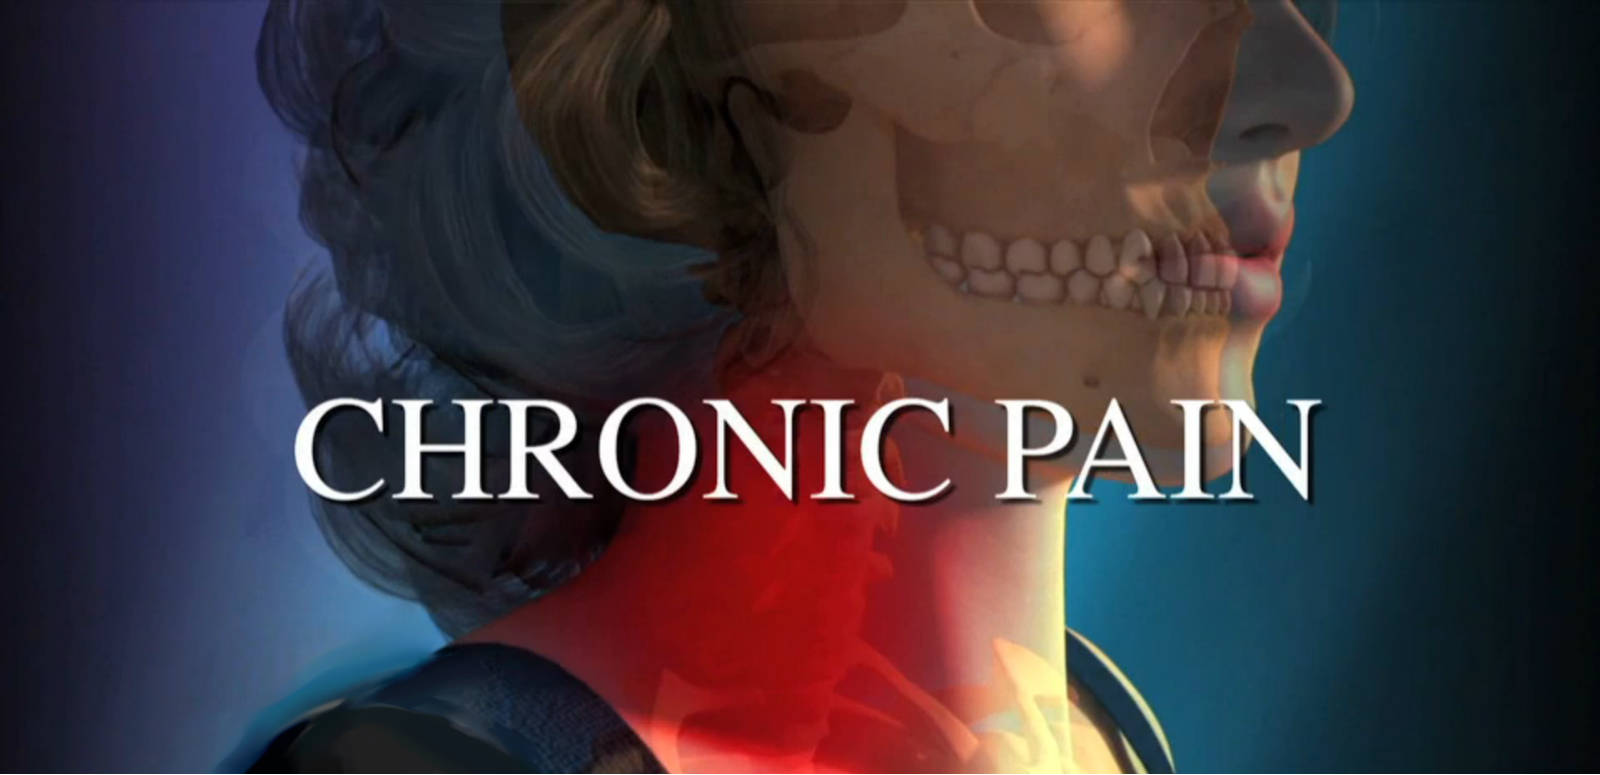 chronic pain with benign brain tumor